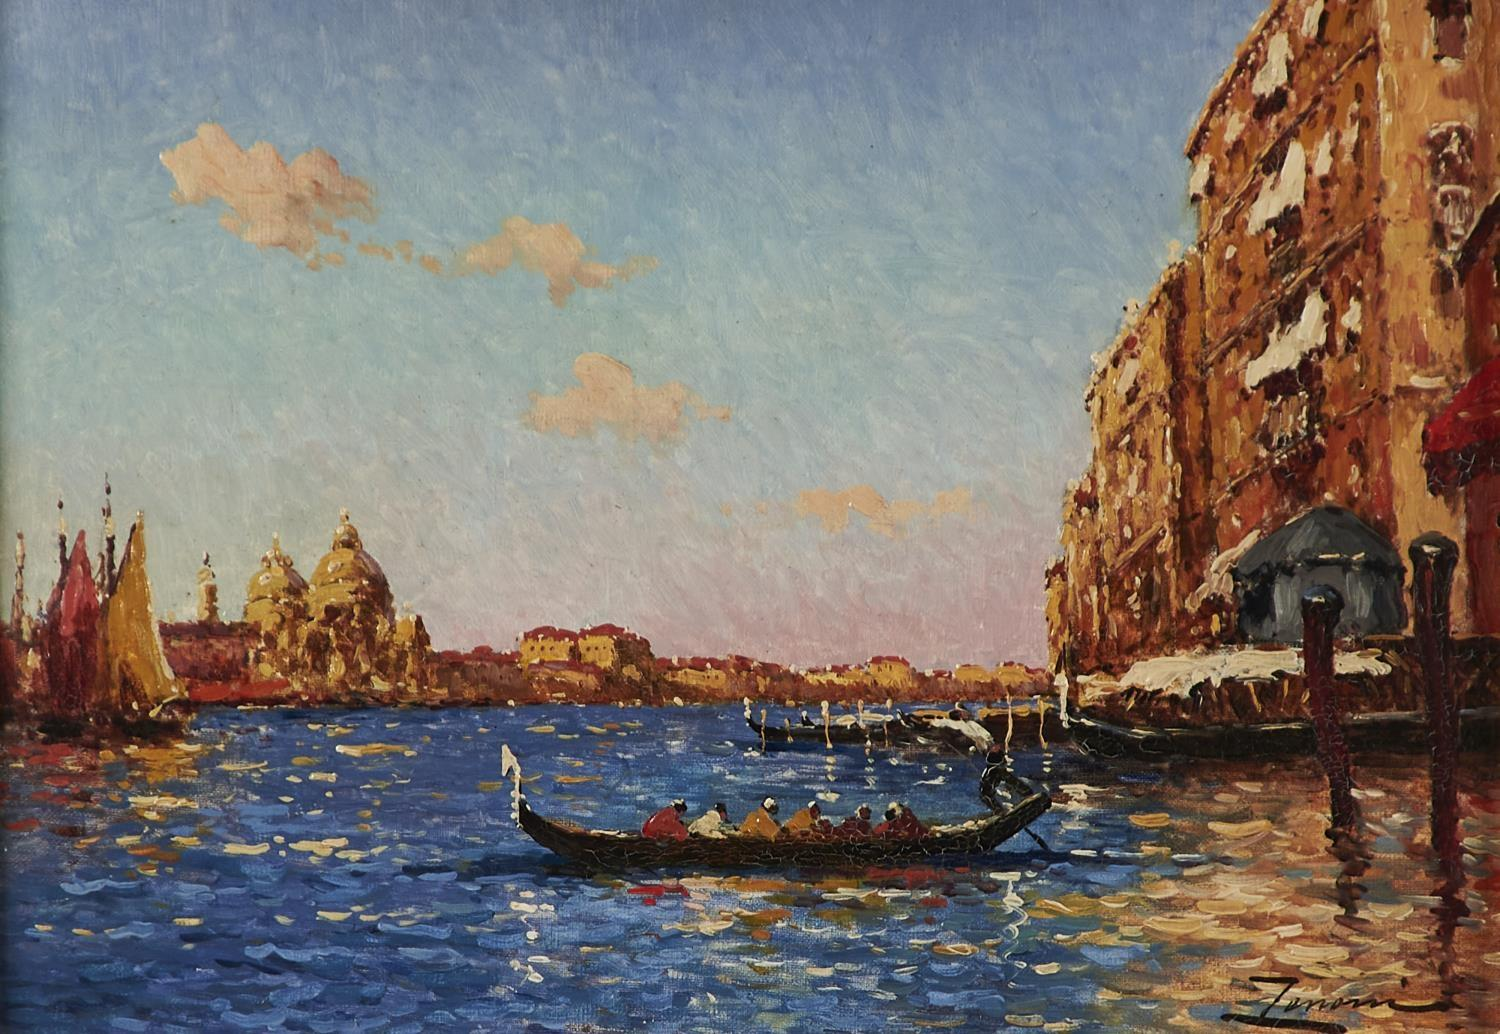 ITALIAN SCHOOL, 19TH/EARLY 20TH CENTURY - THE GRAND CANAL, VENICE, INDISTINCTLY SIGNED, OIL ON